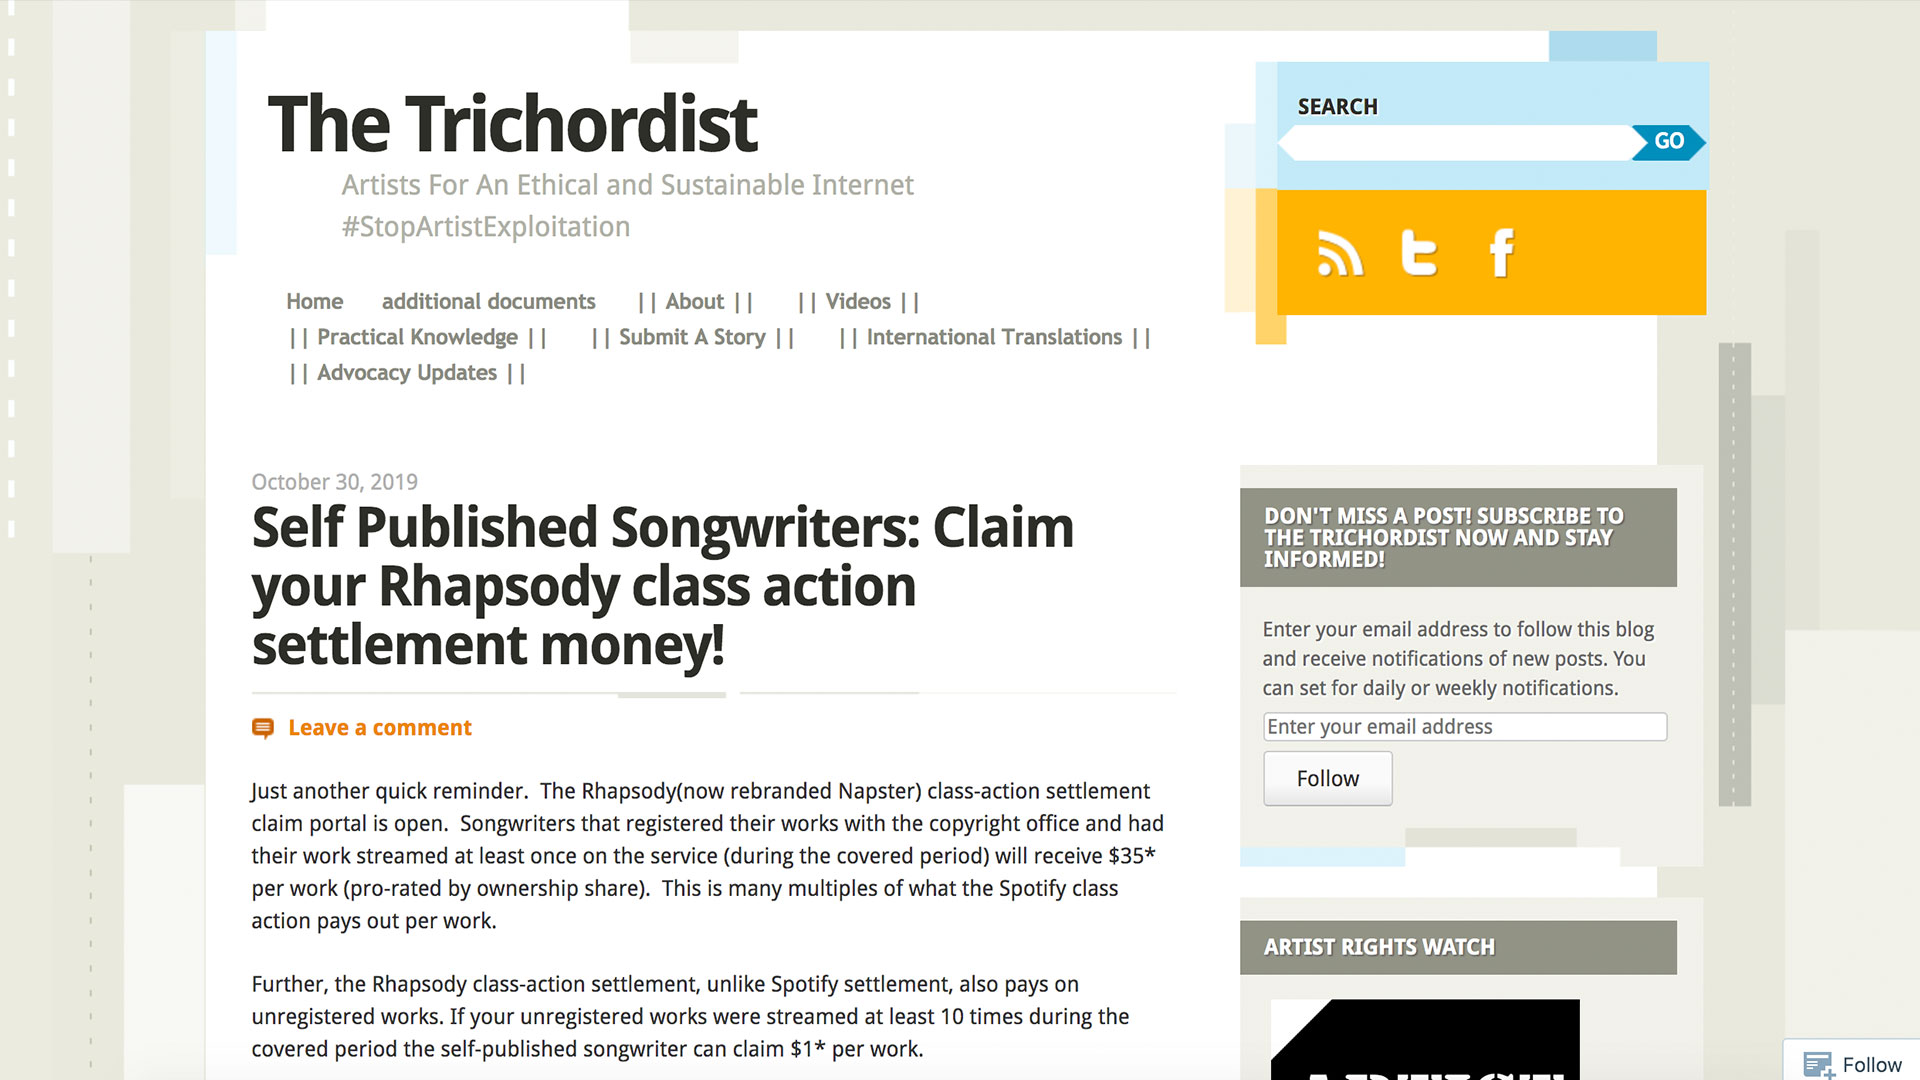 Fairness Rocks News Self Published Songwriters: Claim your Rhapsody class action settlement money!